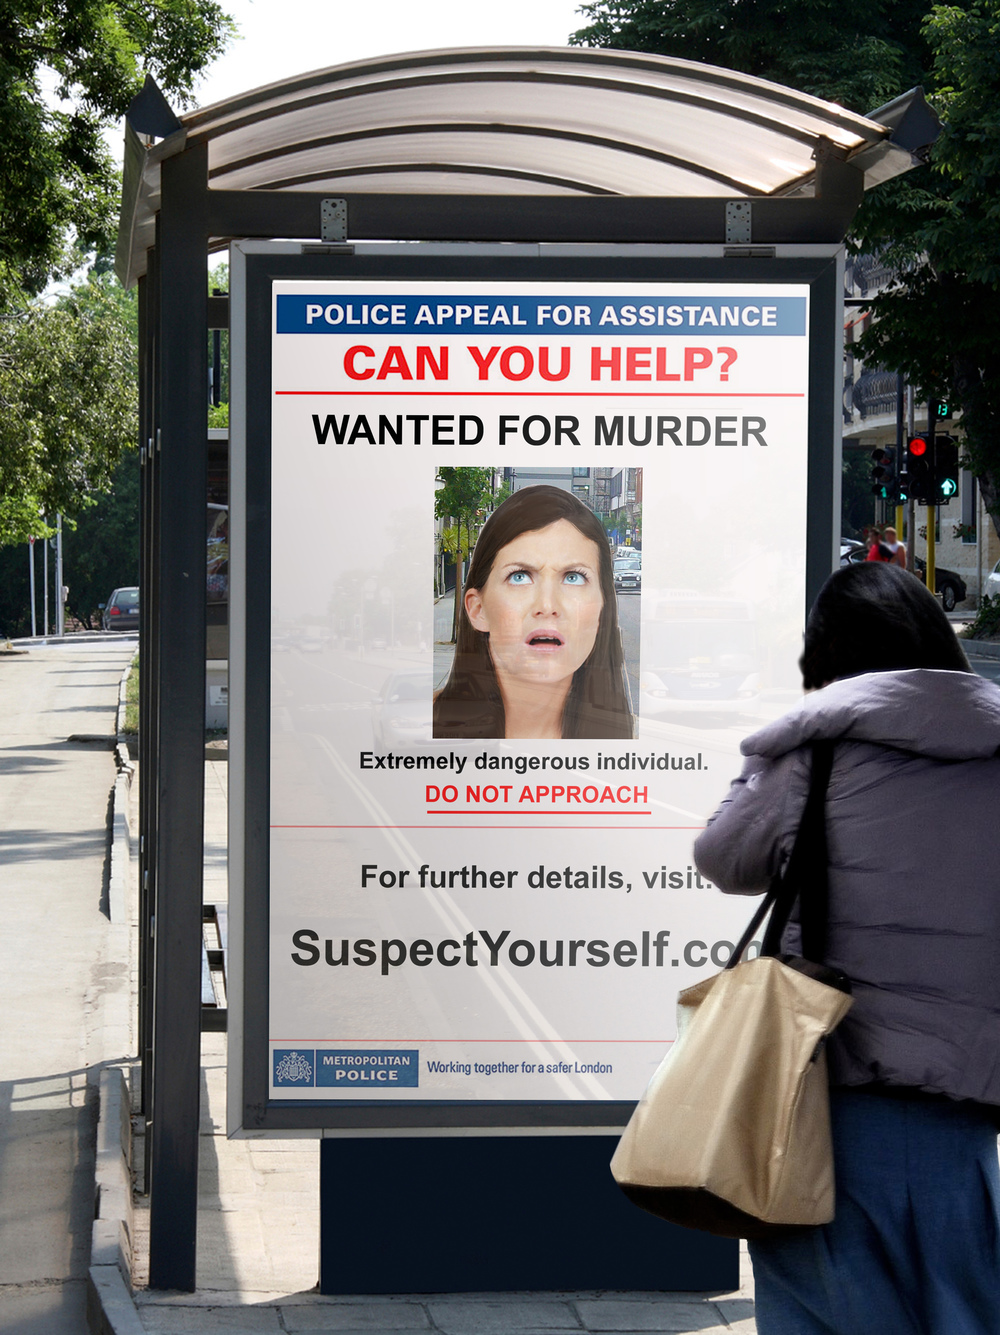 """A digital OOH display would superimpose your image into a Wanted poster, feeding into the campaign's tagline of """"Suspect Yourself"""""""